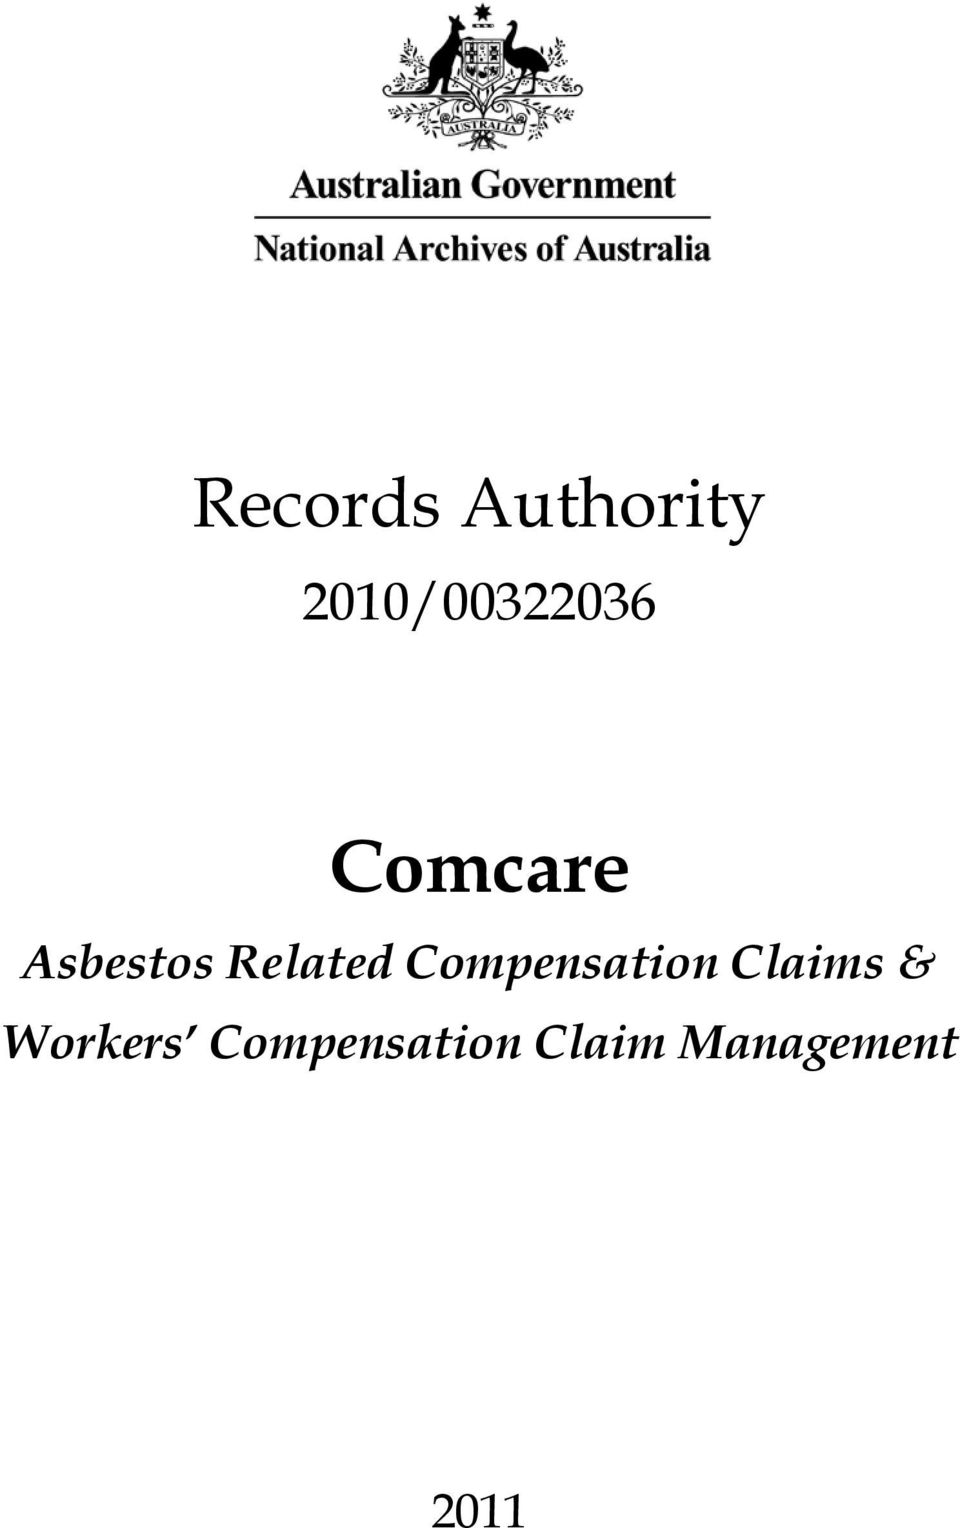 Related Compensation Claims &